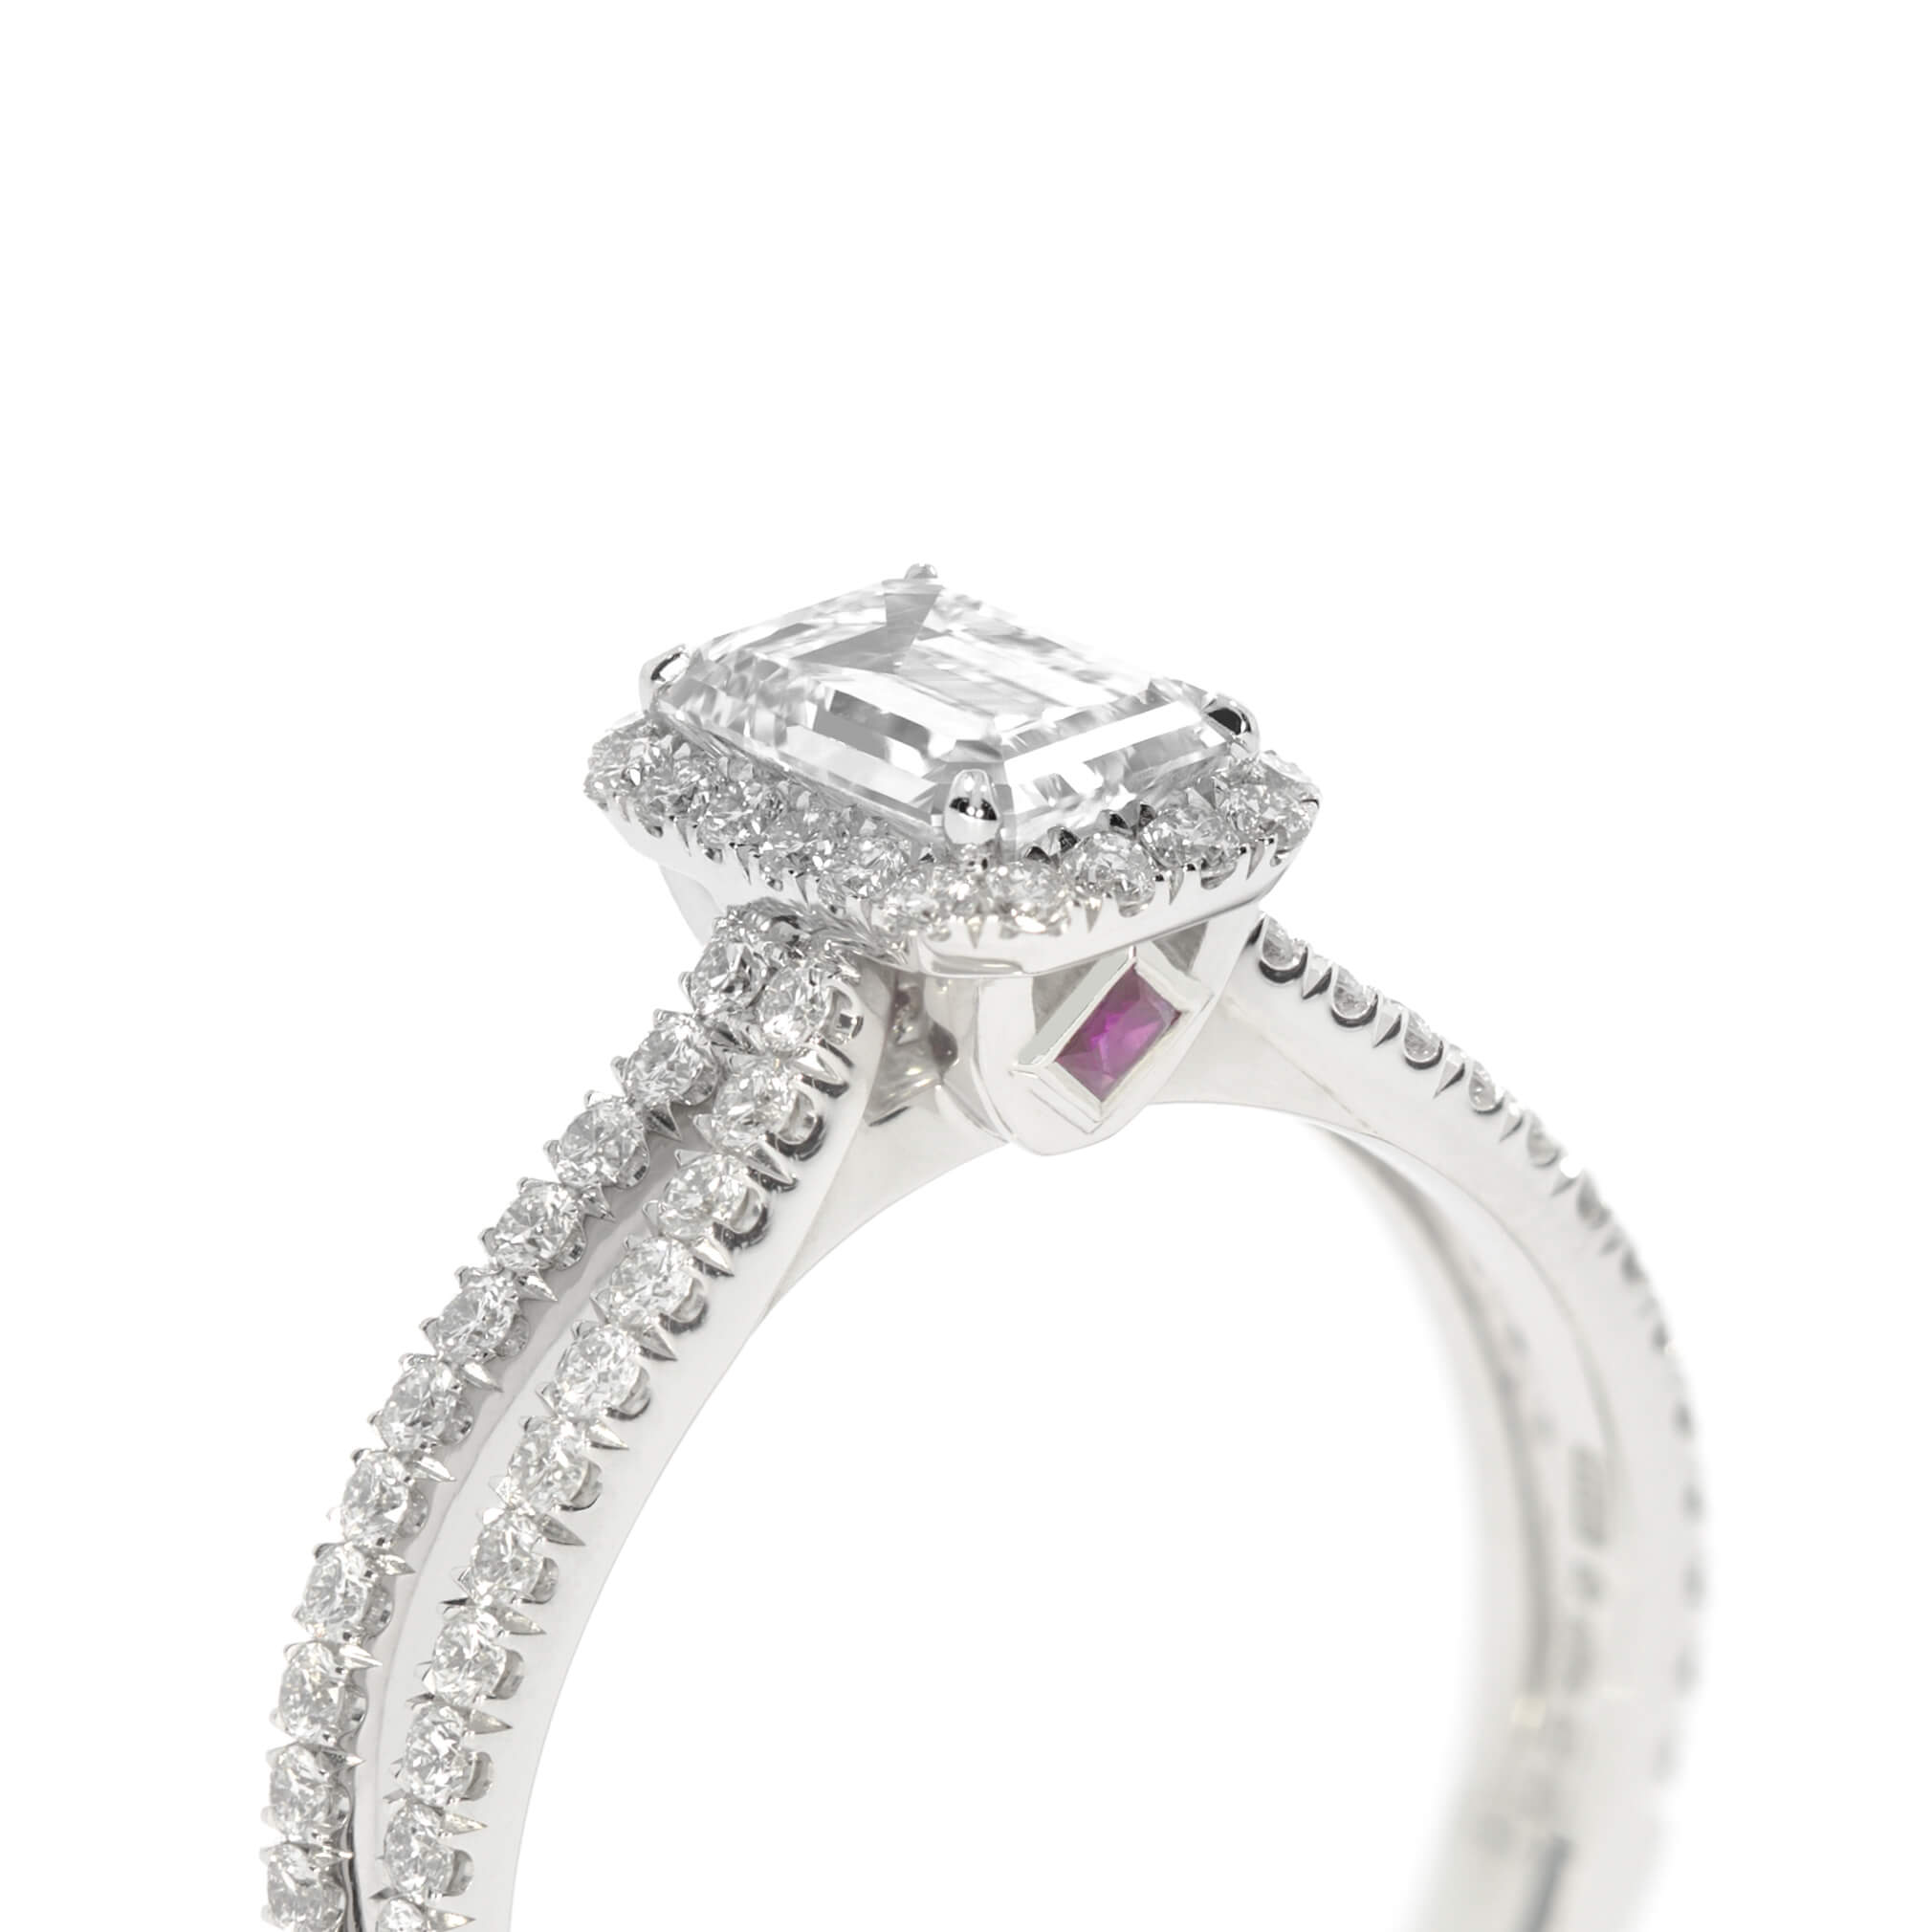 A more intricate design, using an emerald cut centre diamond and split scallop set band, with the sweet touch of a small ruby